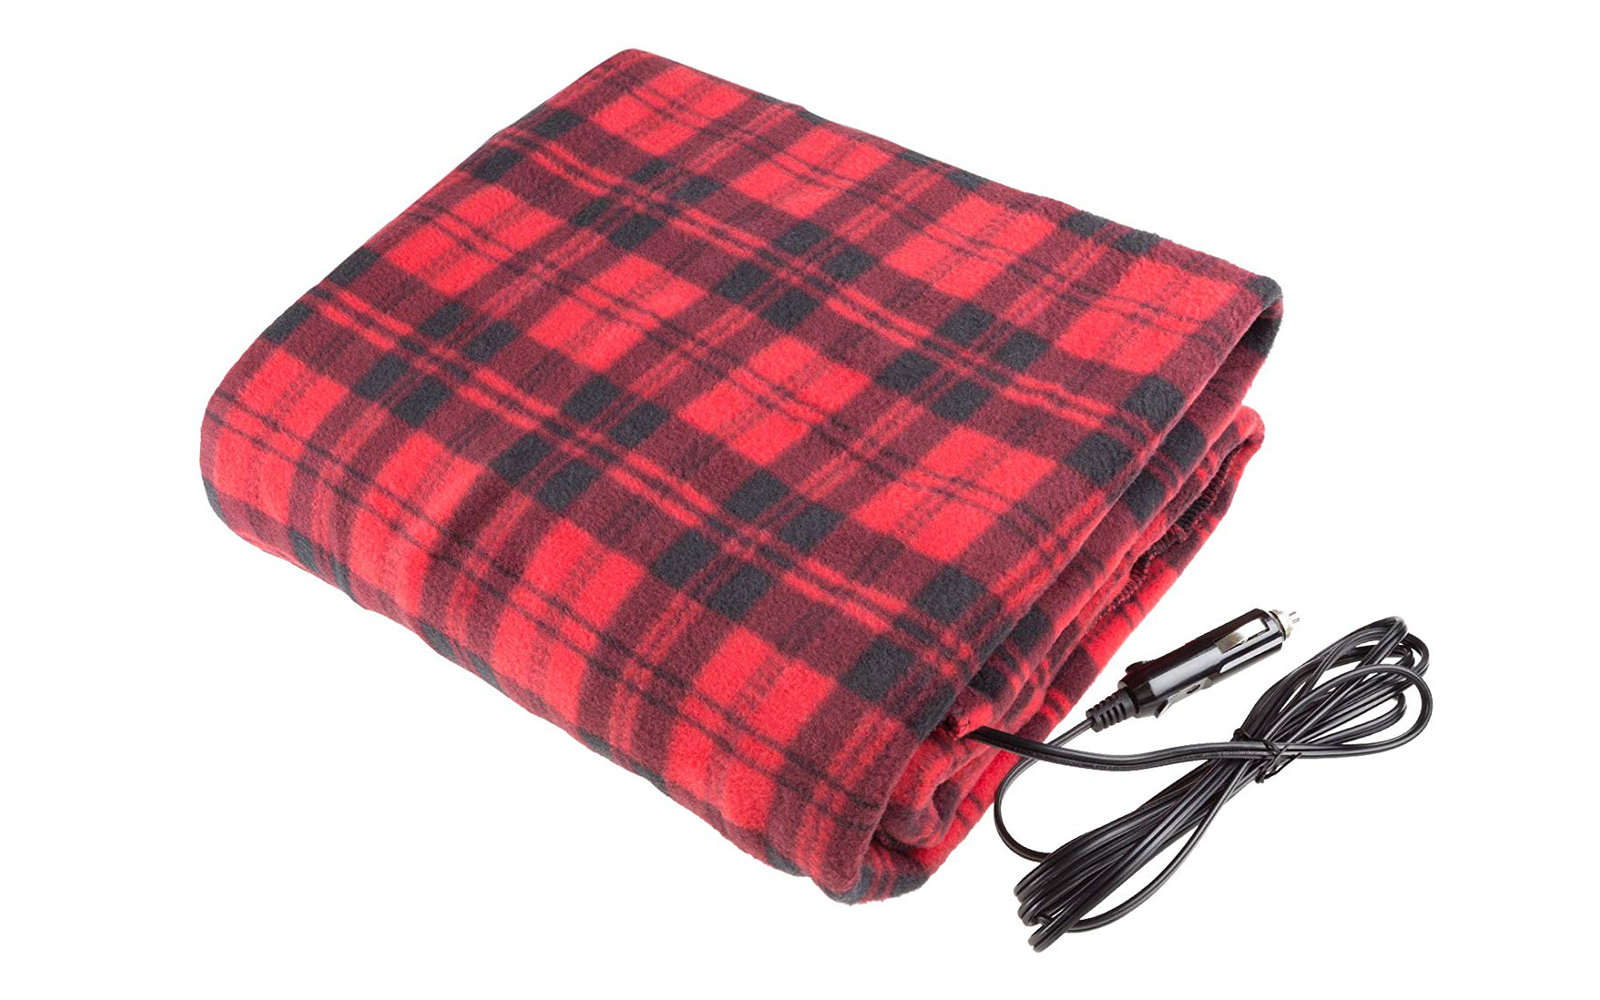 Stalwart 75-BP800 Red Electric Blanket for Automobile